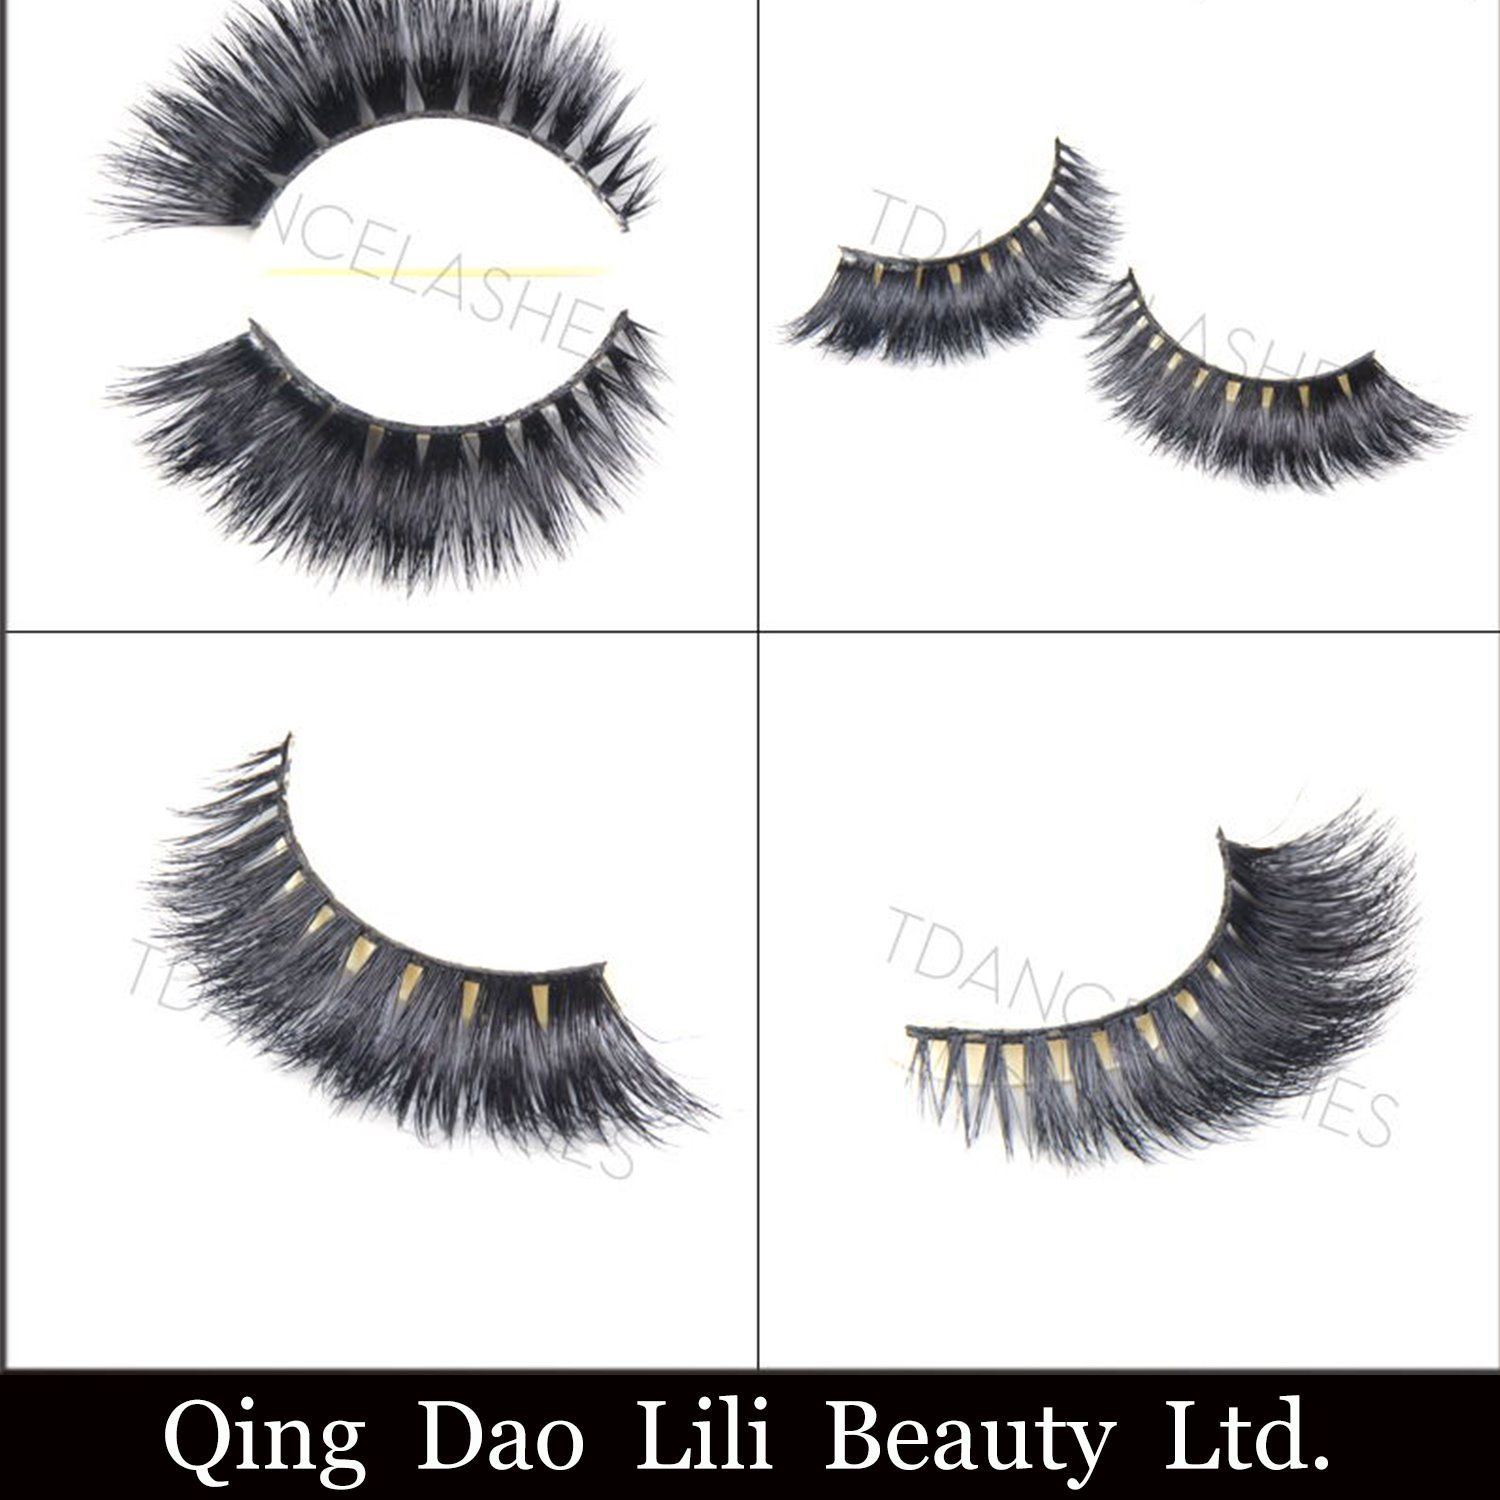 877f6520396 China Custom Eyelash Packing High Quality Private Label 100% Real 3D Mink  Lashes - China Eyelashes, Lashes